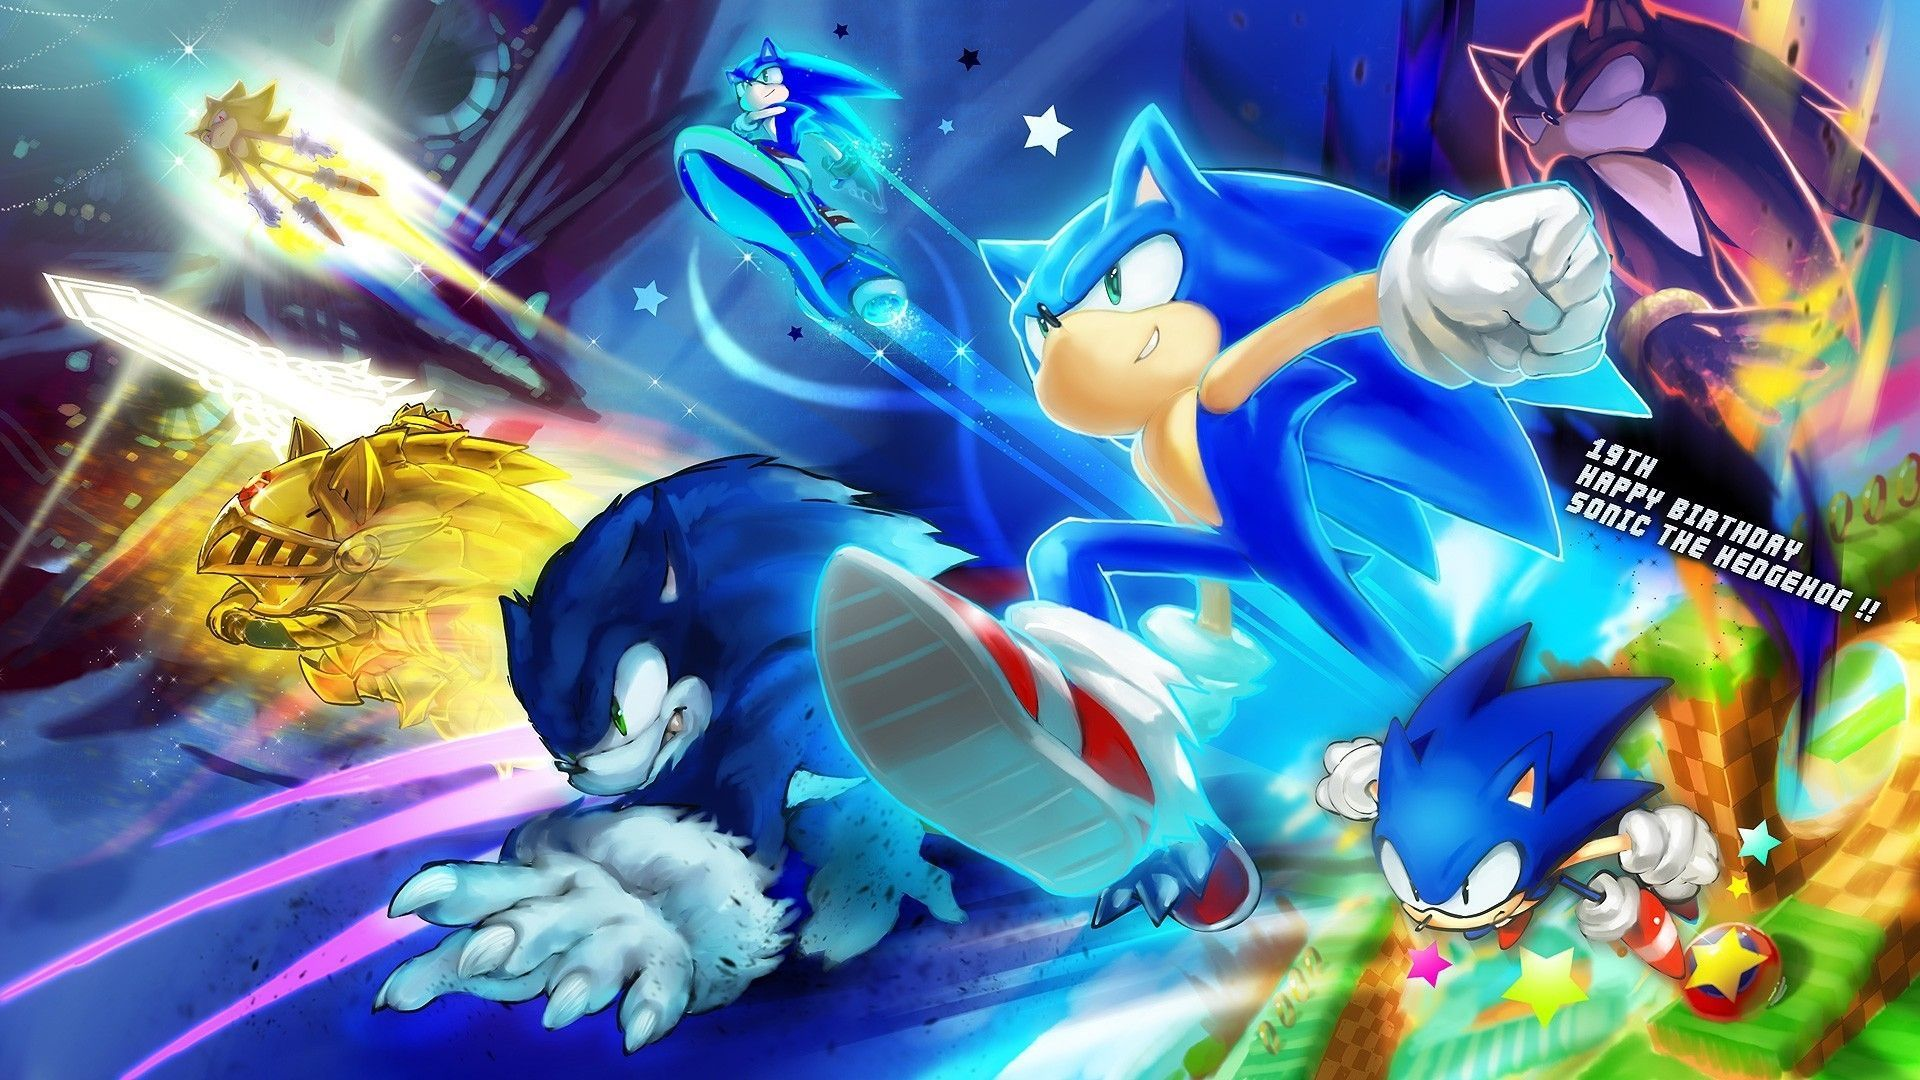 Sonic Wallpaper 72 Images For Sonic Wallpapers Windows 10 Trends In 2020 Sonic Sonic The Hedgehog Cartoon Wallpaper